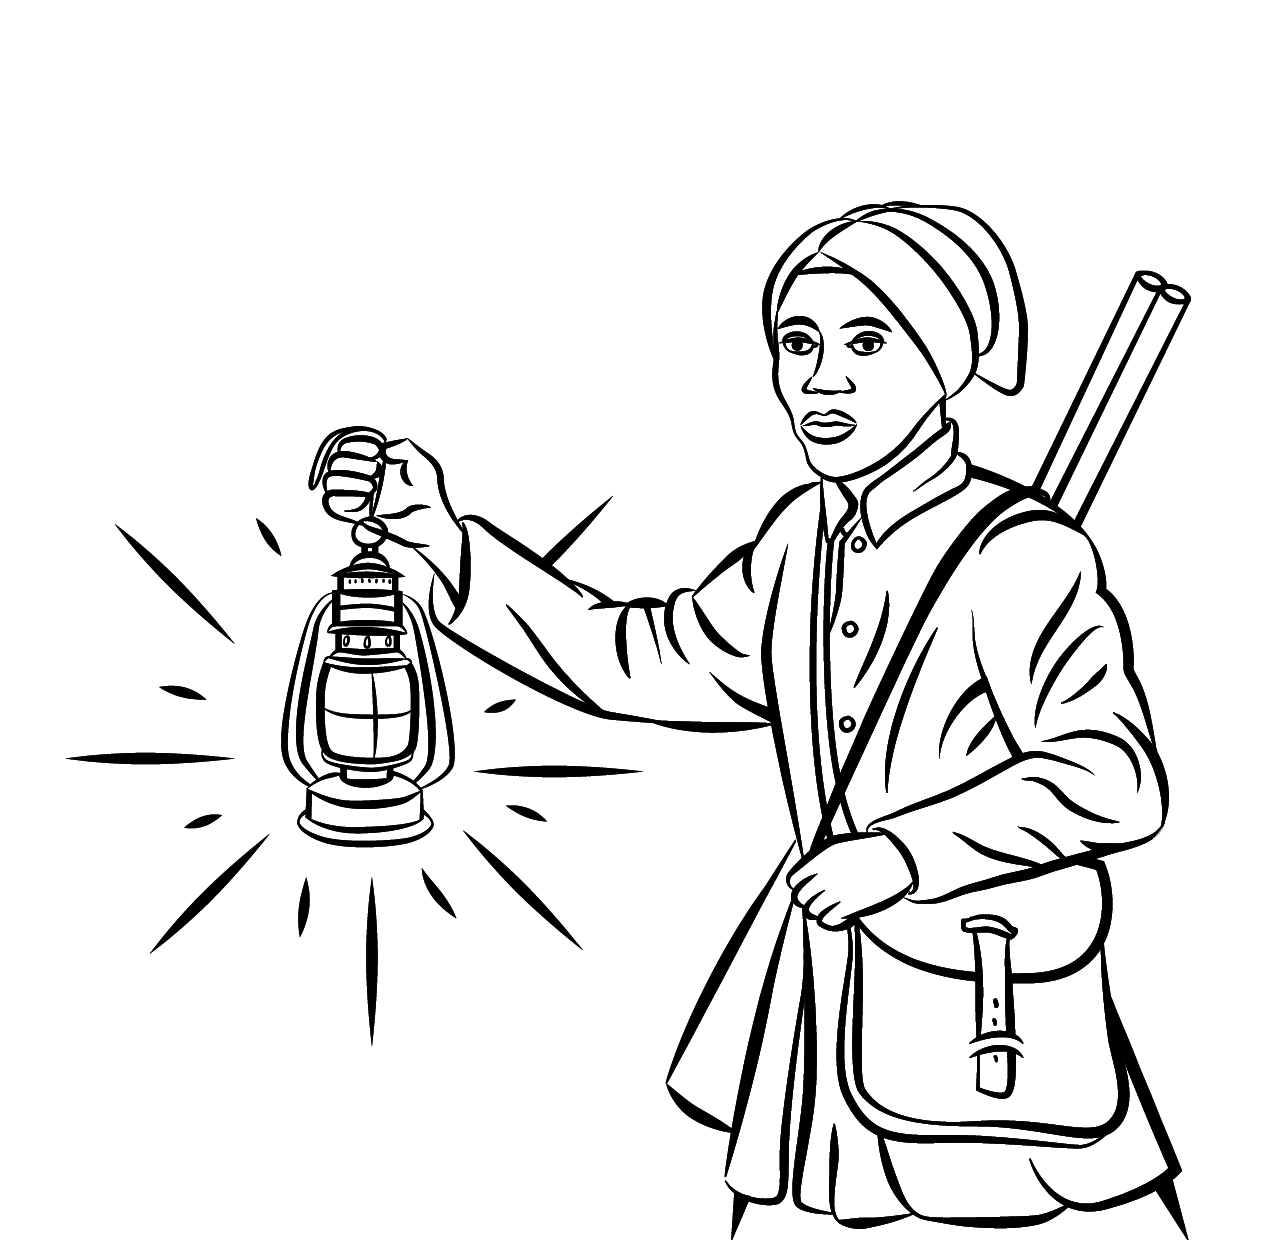 Harriet Tubman Wanted Poster Harriet Tub-Harriet Tubman Wanted Poster Harriet Tubman Colouring Page Links Resources Amazing ...-13